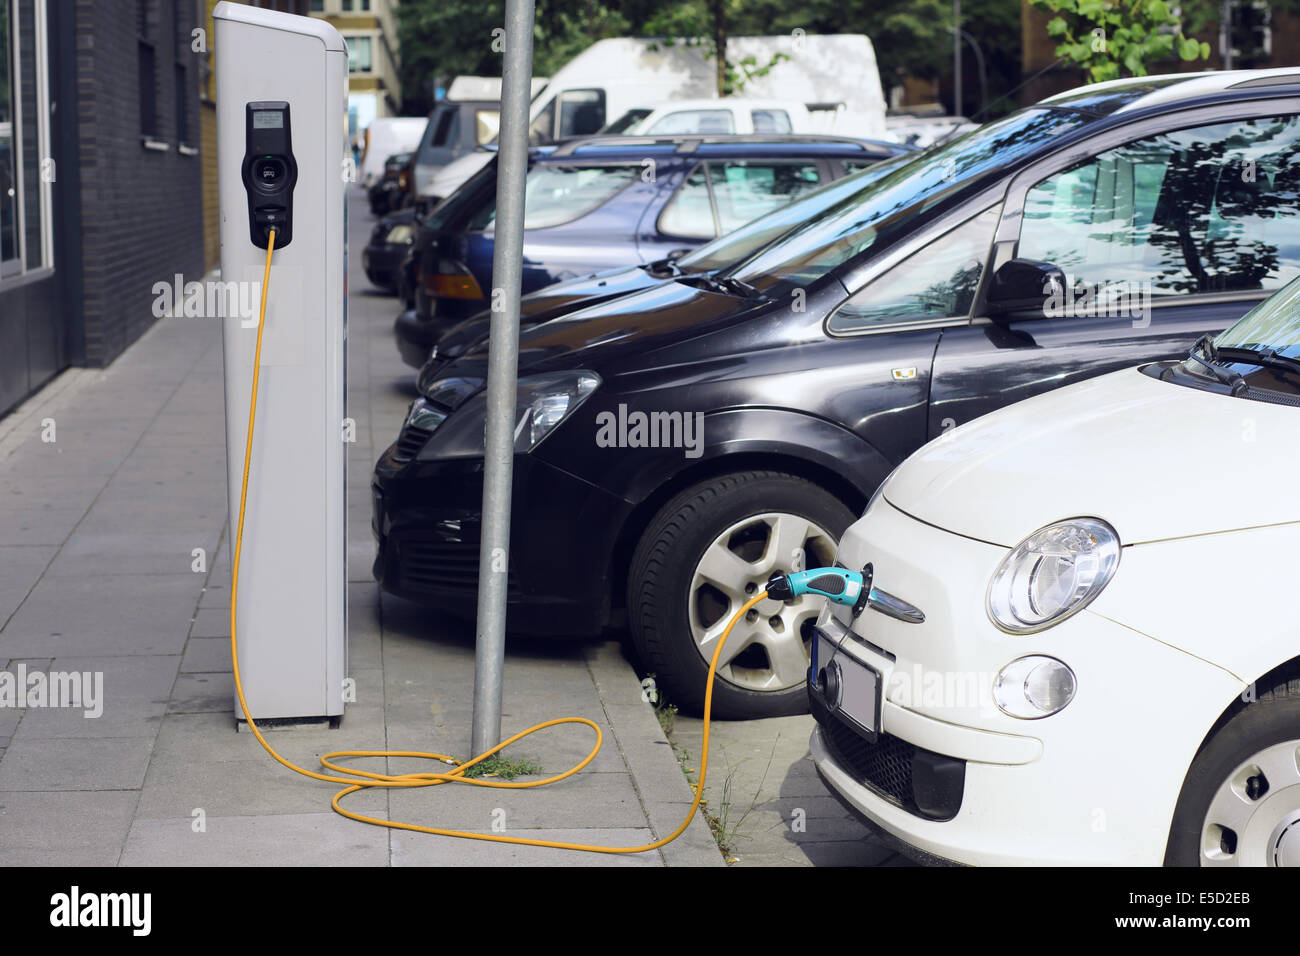 Recharge. Electric Car in Free Charging Station. Environmentally Friendly Transport - Stock Image